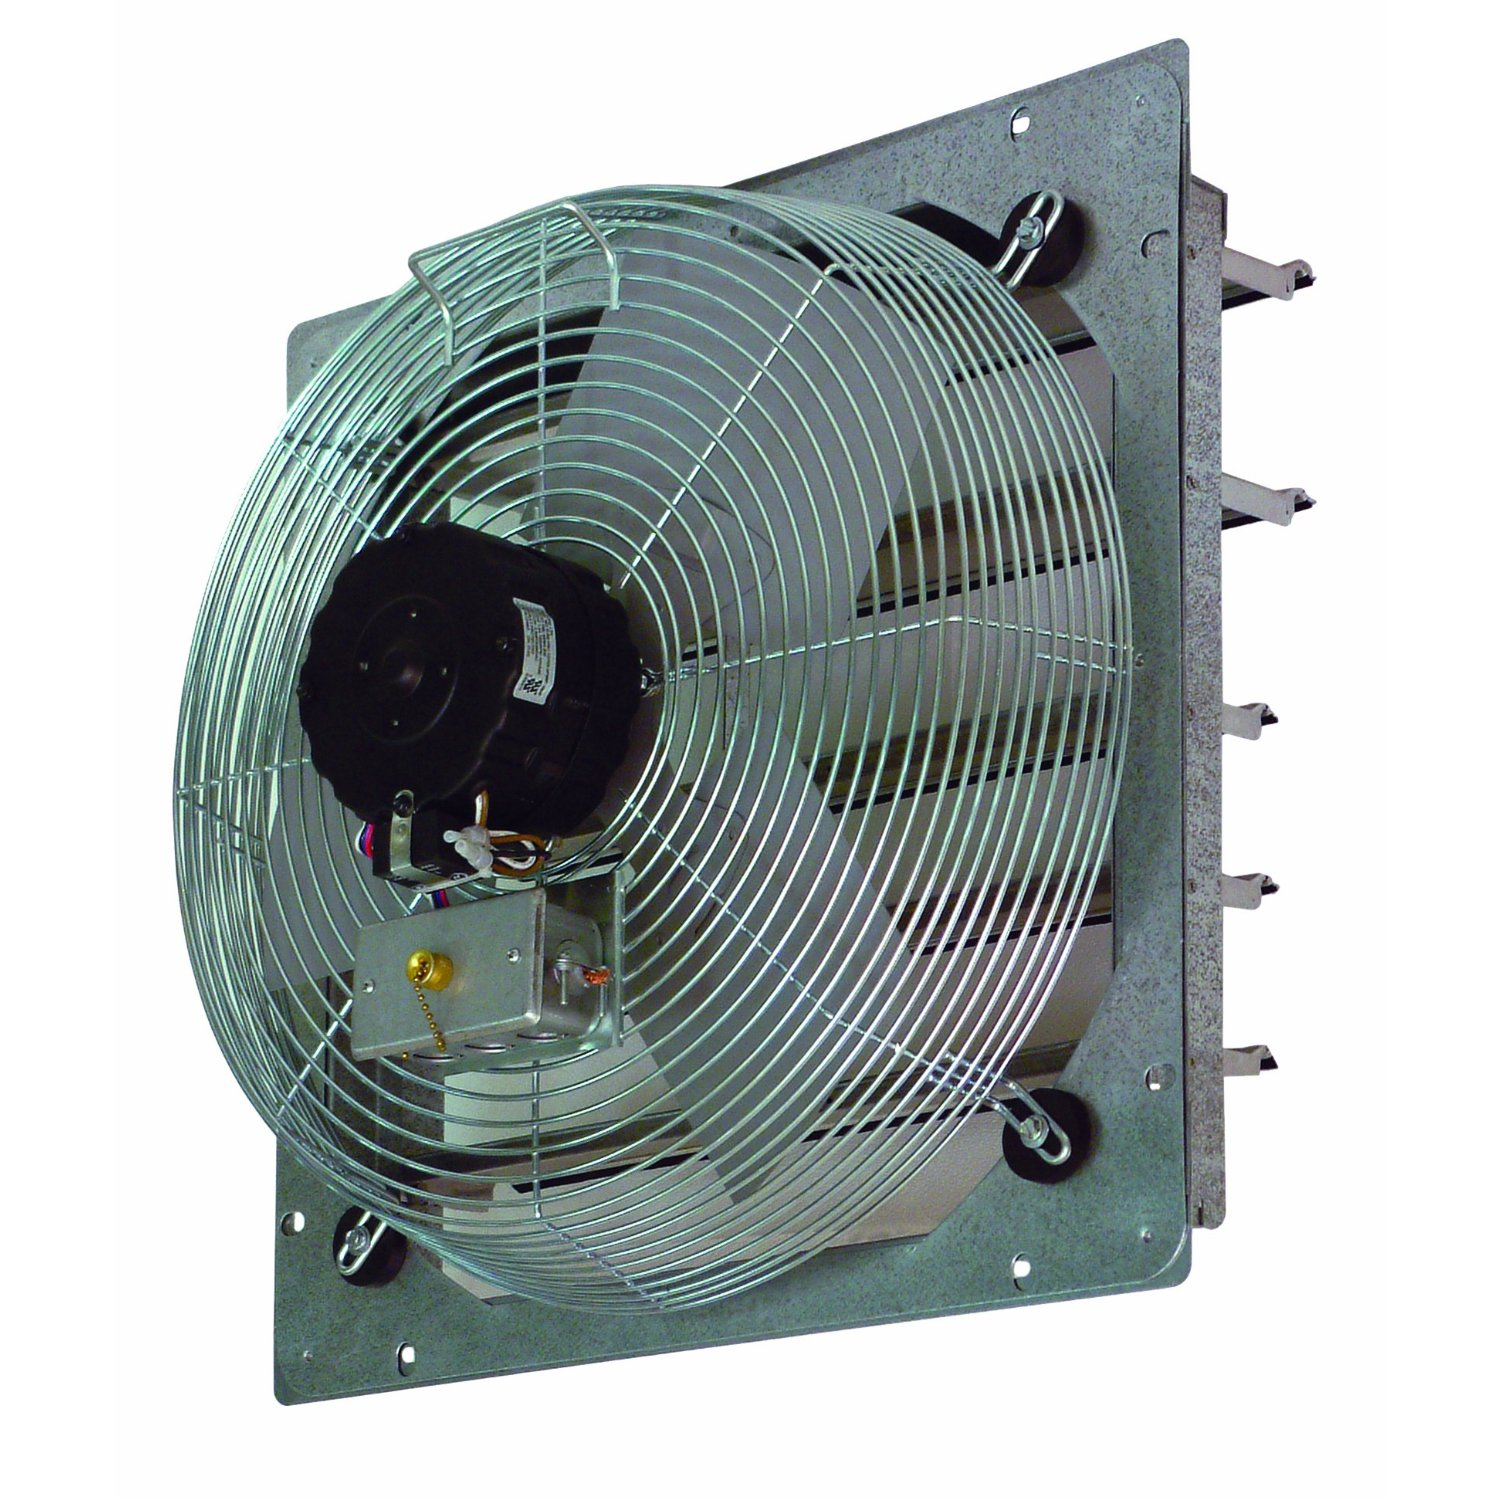 Inc. 30′ Belt Drive Whole House Fan 54506 Attic & Whole House Fans